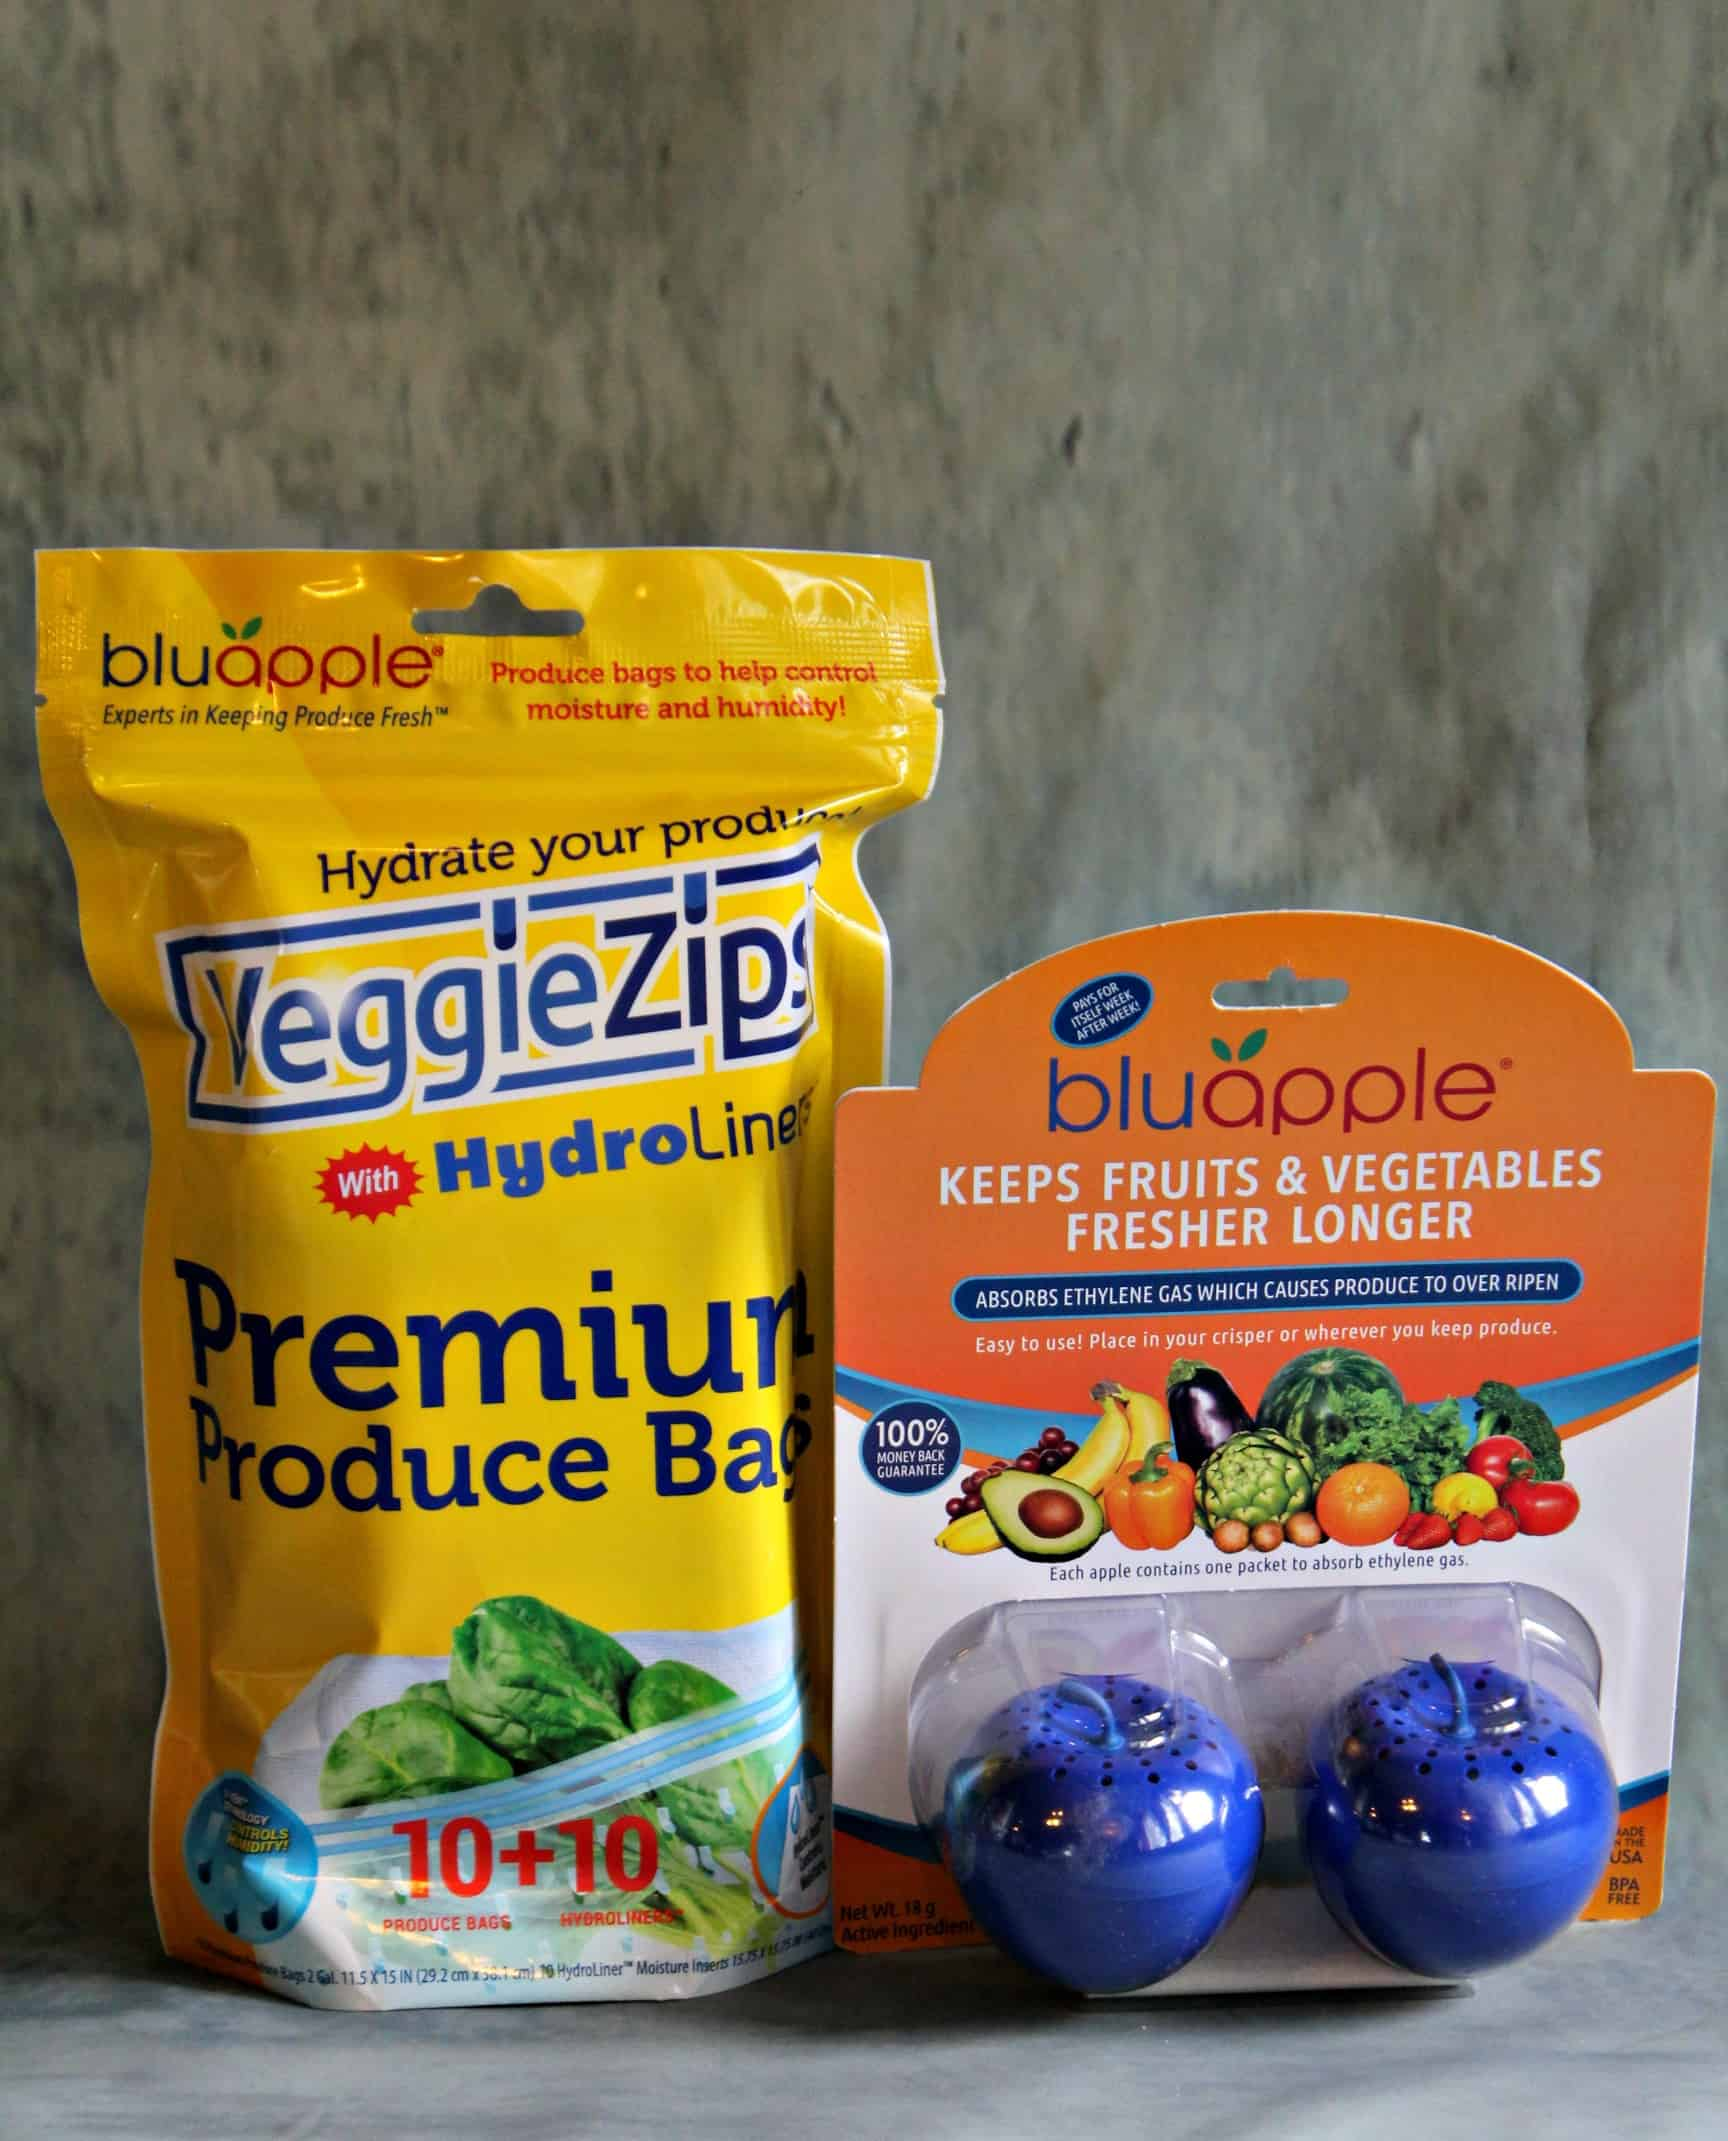 BluApple helps your produce stay fresher longer